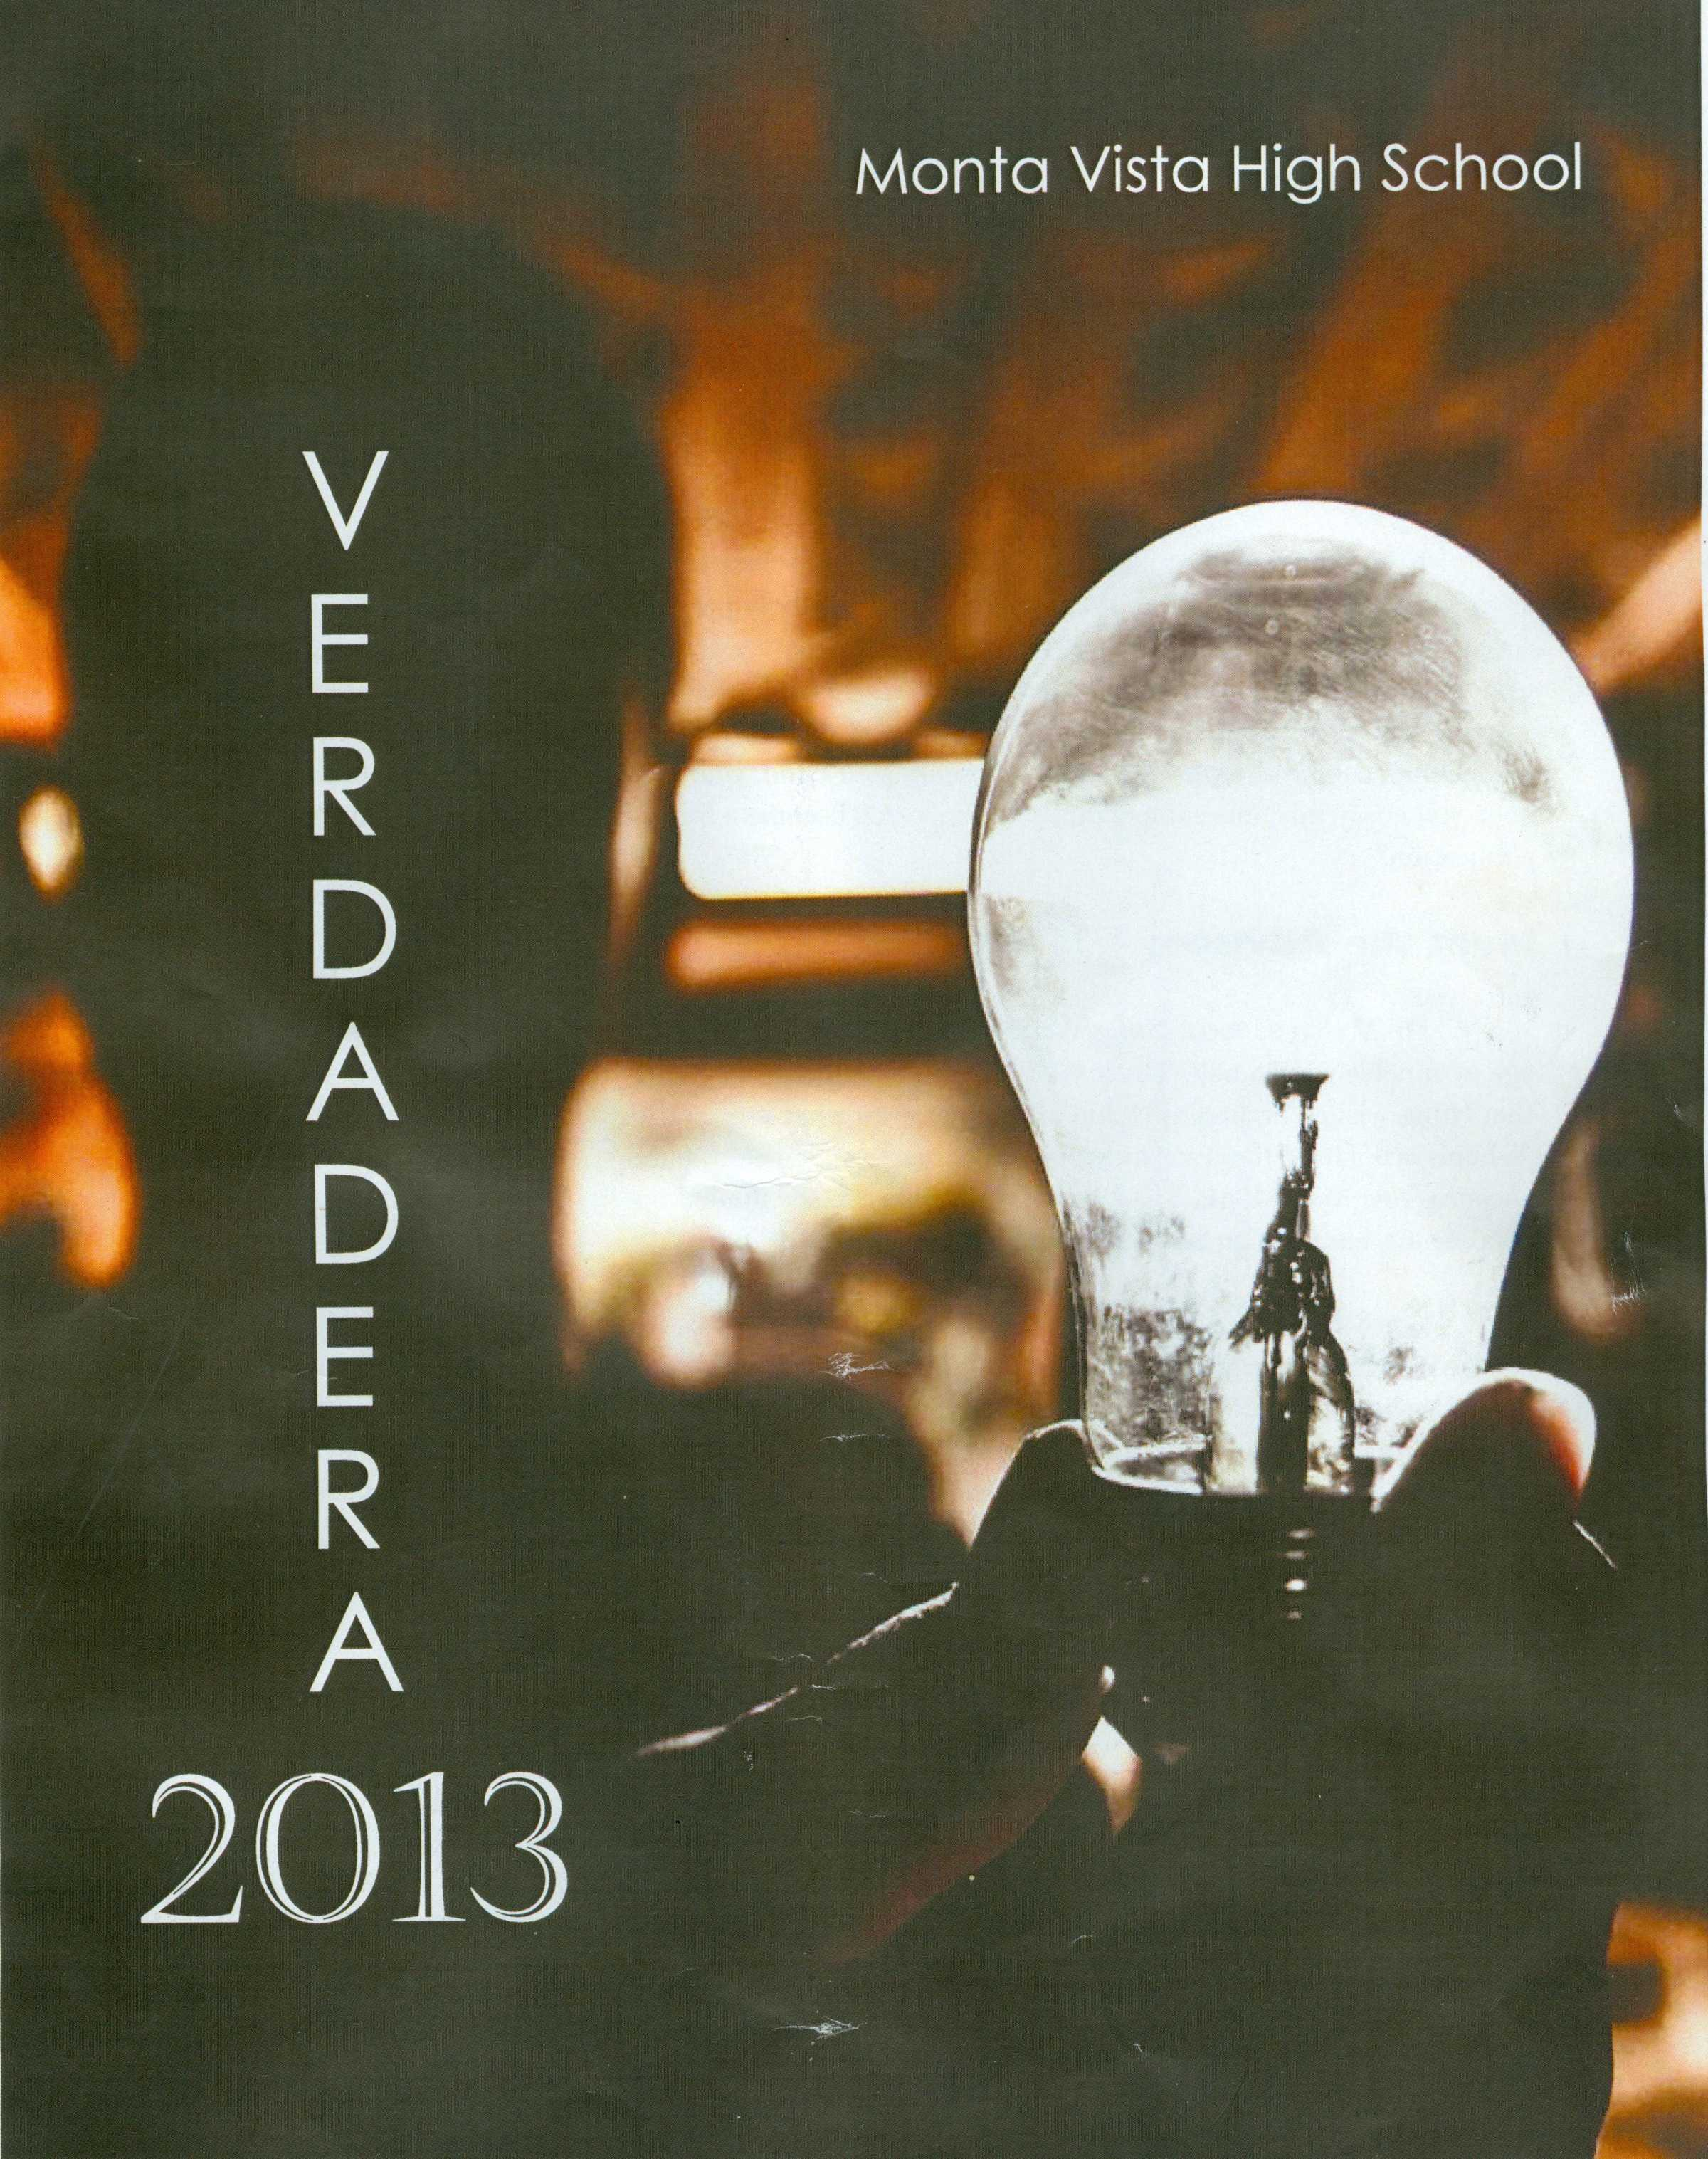 Verdadera Publication in 2013. The magazine was officially started in 2005 by Hung Wei, parent of former students at MVHS.